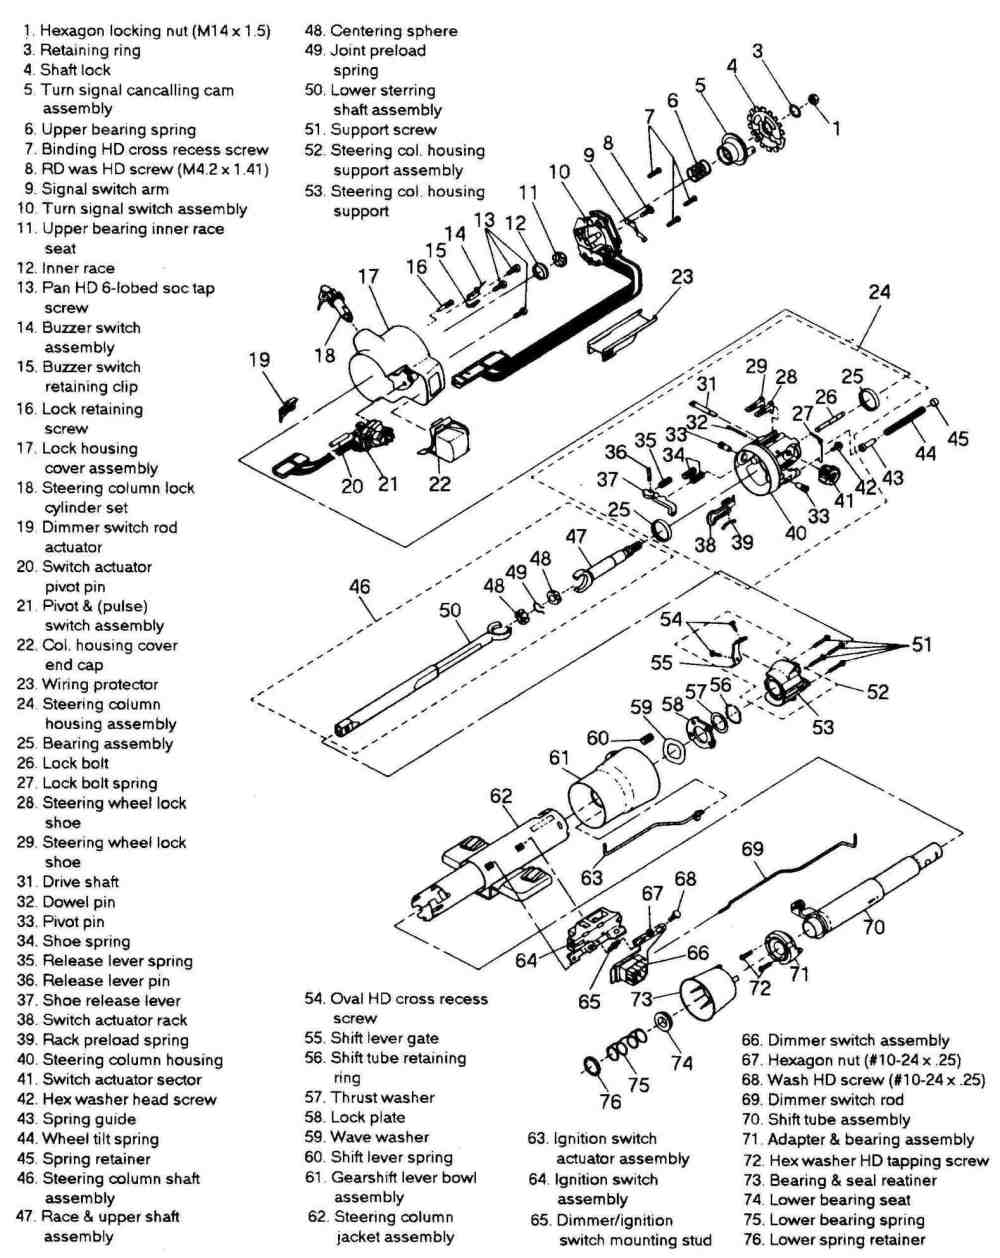 medium resolution of regarding the sticking clutch issue third generation body harley six speed transmission diagram exploded diagram jpg